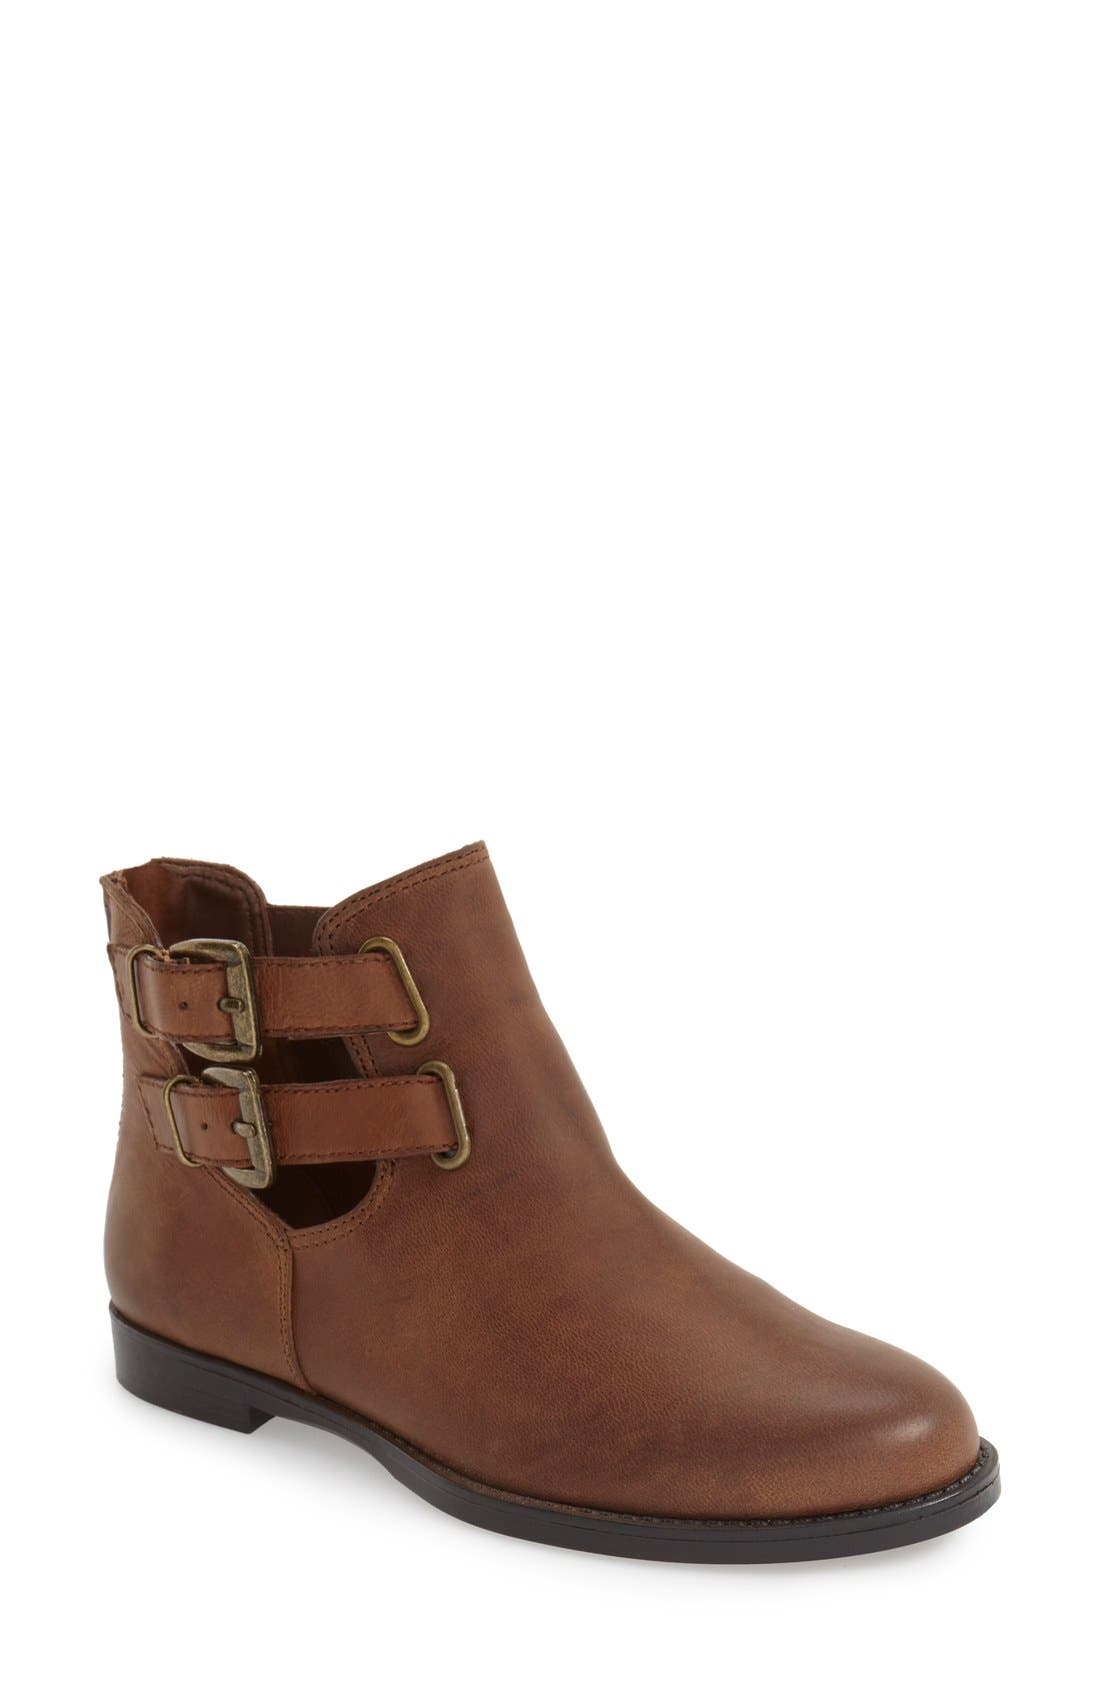 'Ramona' Double Buckle Bootie,                         Main,                         color, Camel Leather